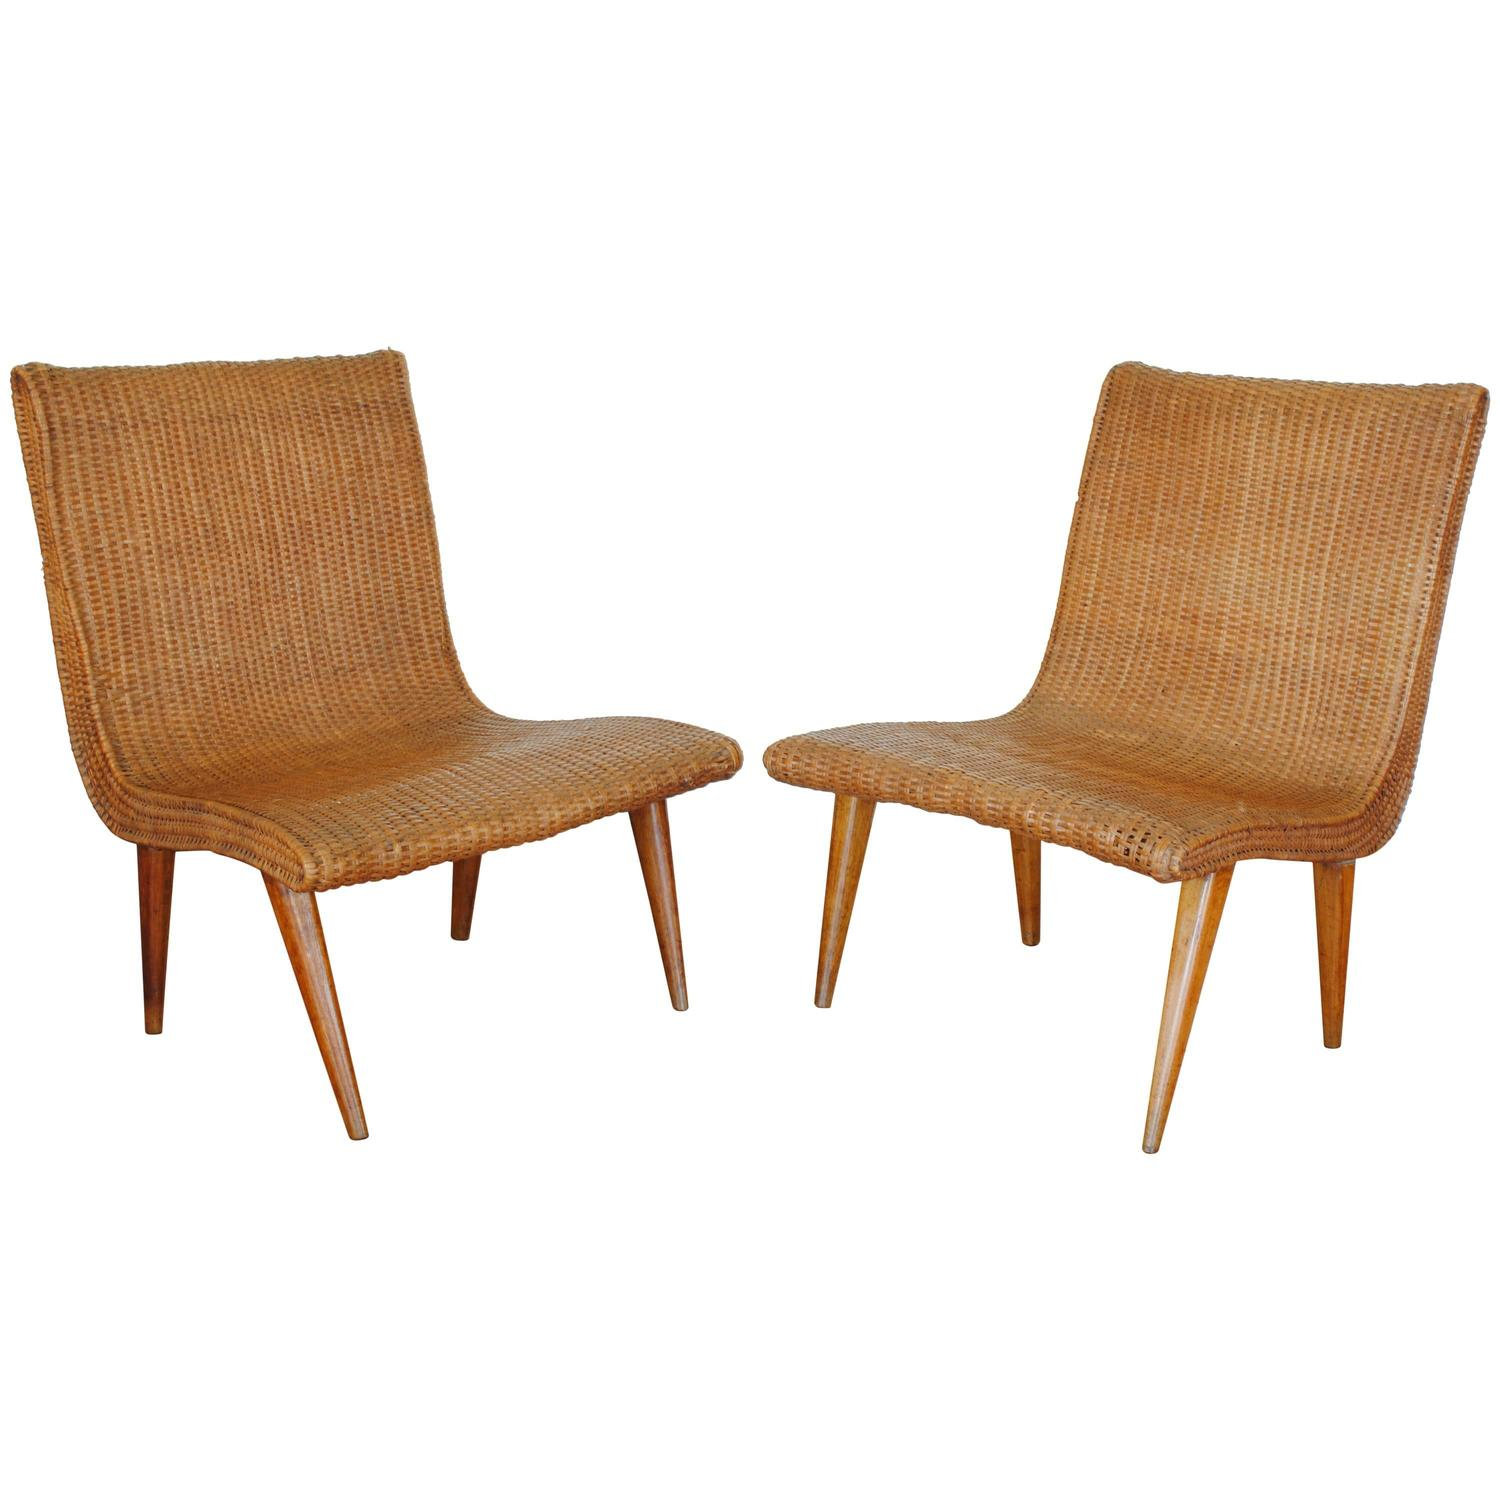 Pair Of French Wooden And Rattan Upholstered Chairs At 1stdibs. Full resolution‎  photograph, nominally Width 1500 Height 1500 pixels, photograph with #B15308.